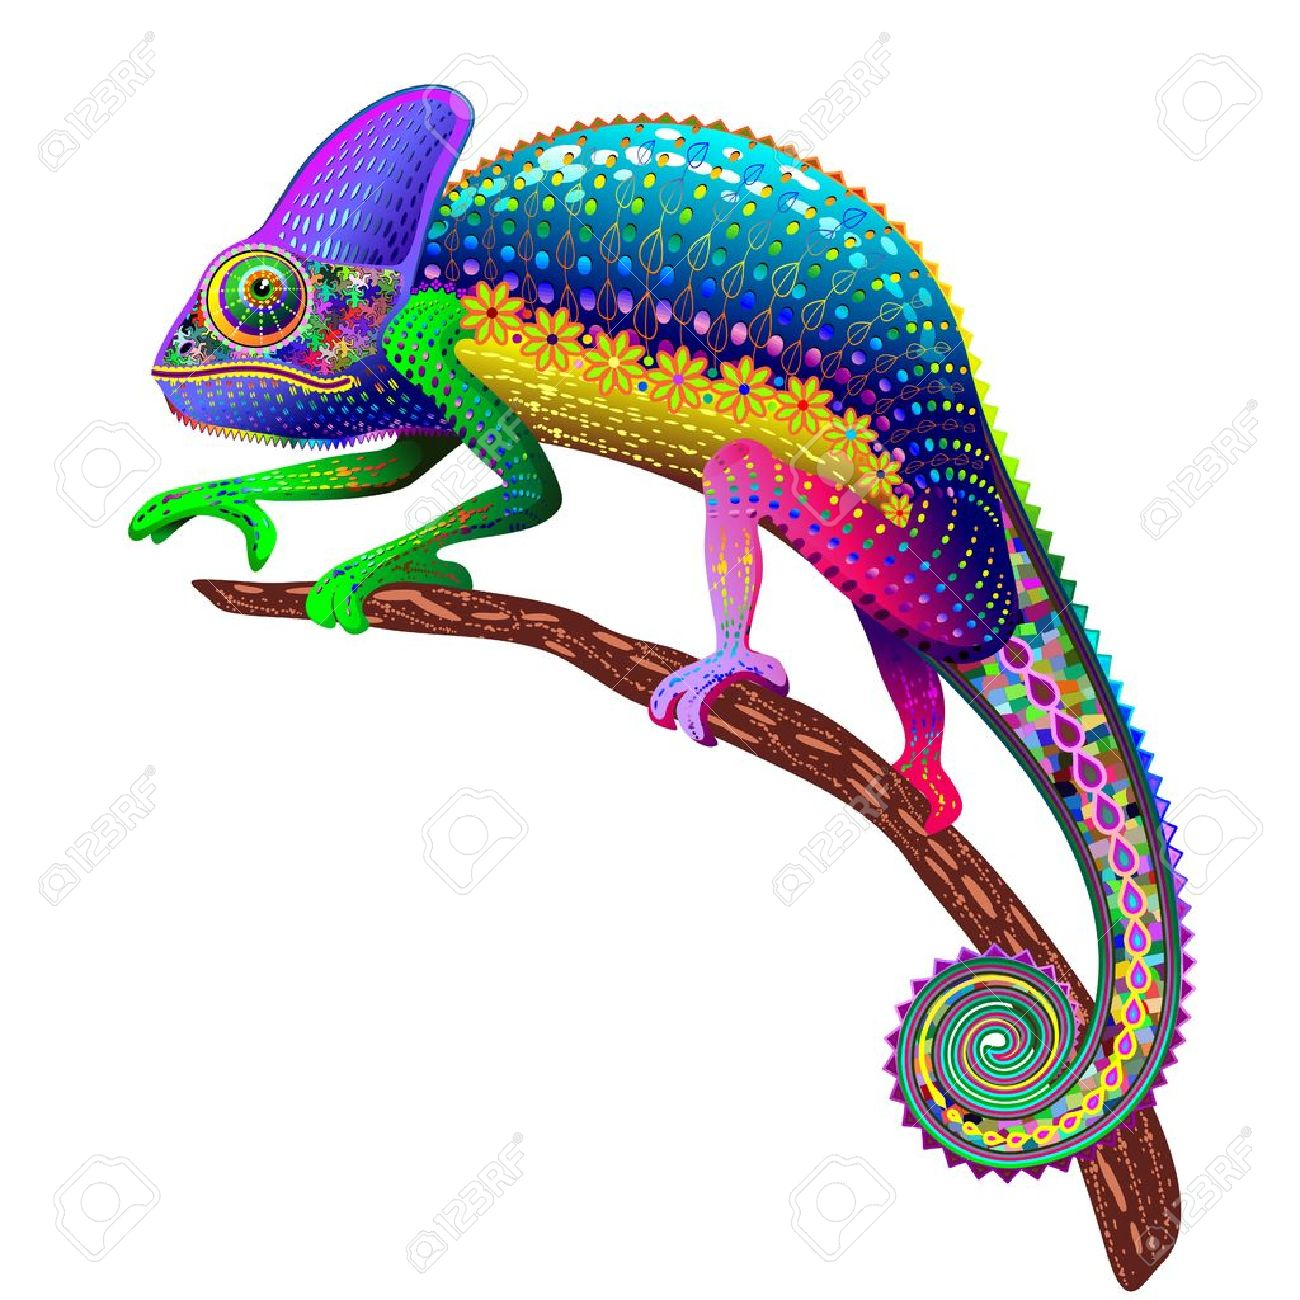 5 180 chameleon cliparts stock vector and royalty free chameleon rh 123rf com chameleon clipart outline cute chameleon clipart